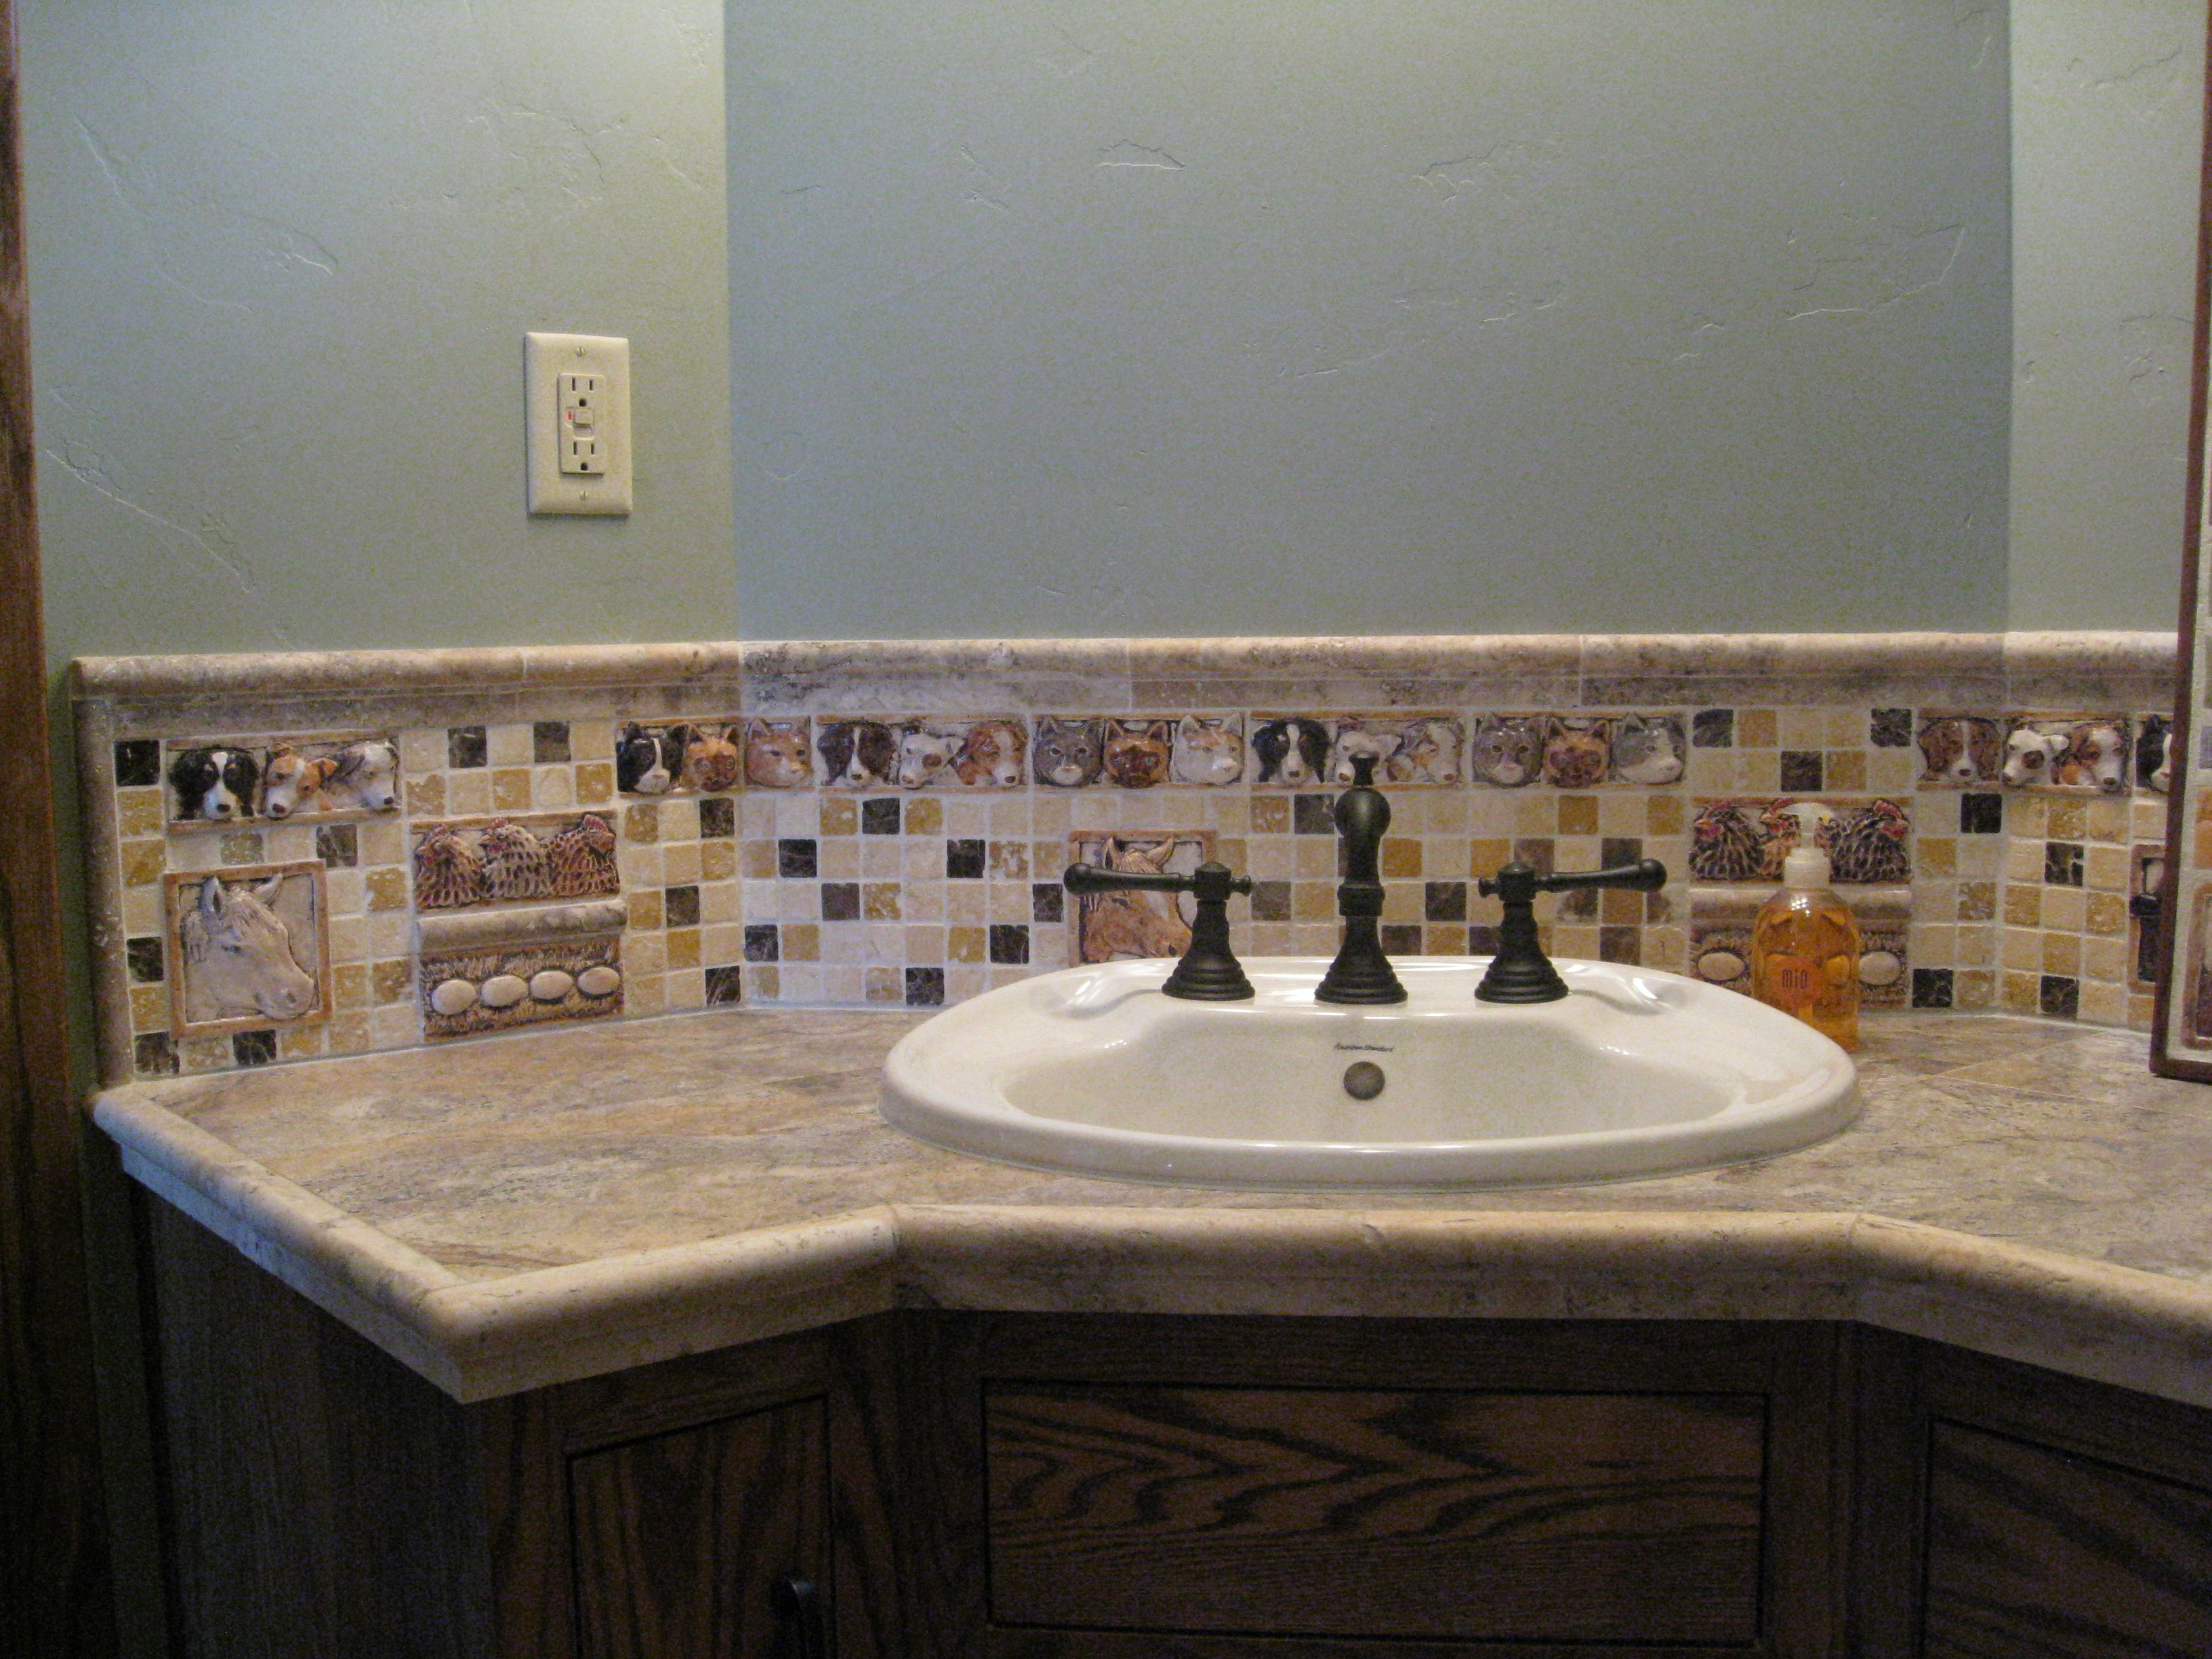 Bathroom sink backsplash with decorative handmade barnyard for Backsplash ideas for bathroom sinks